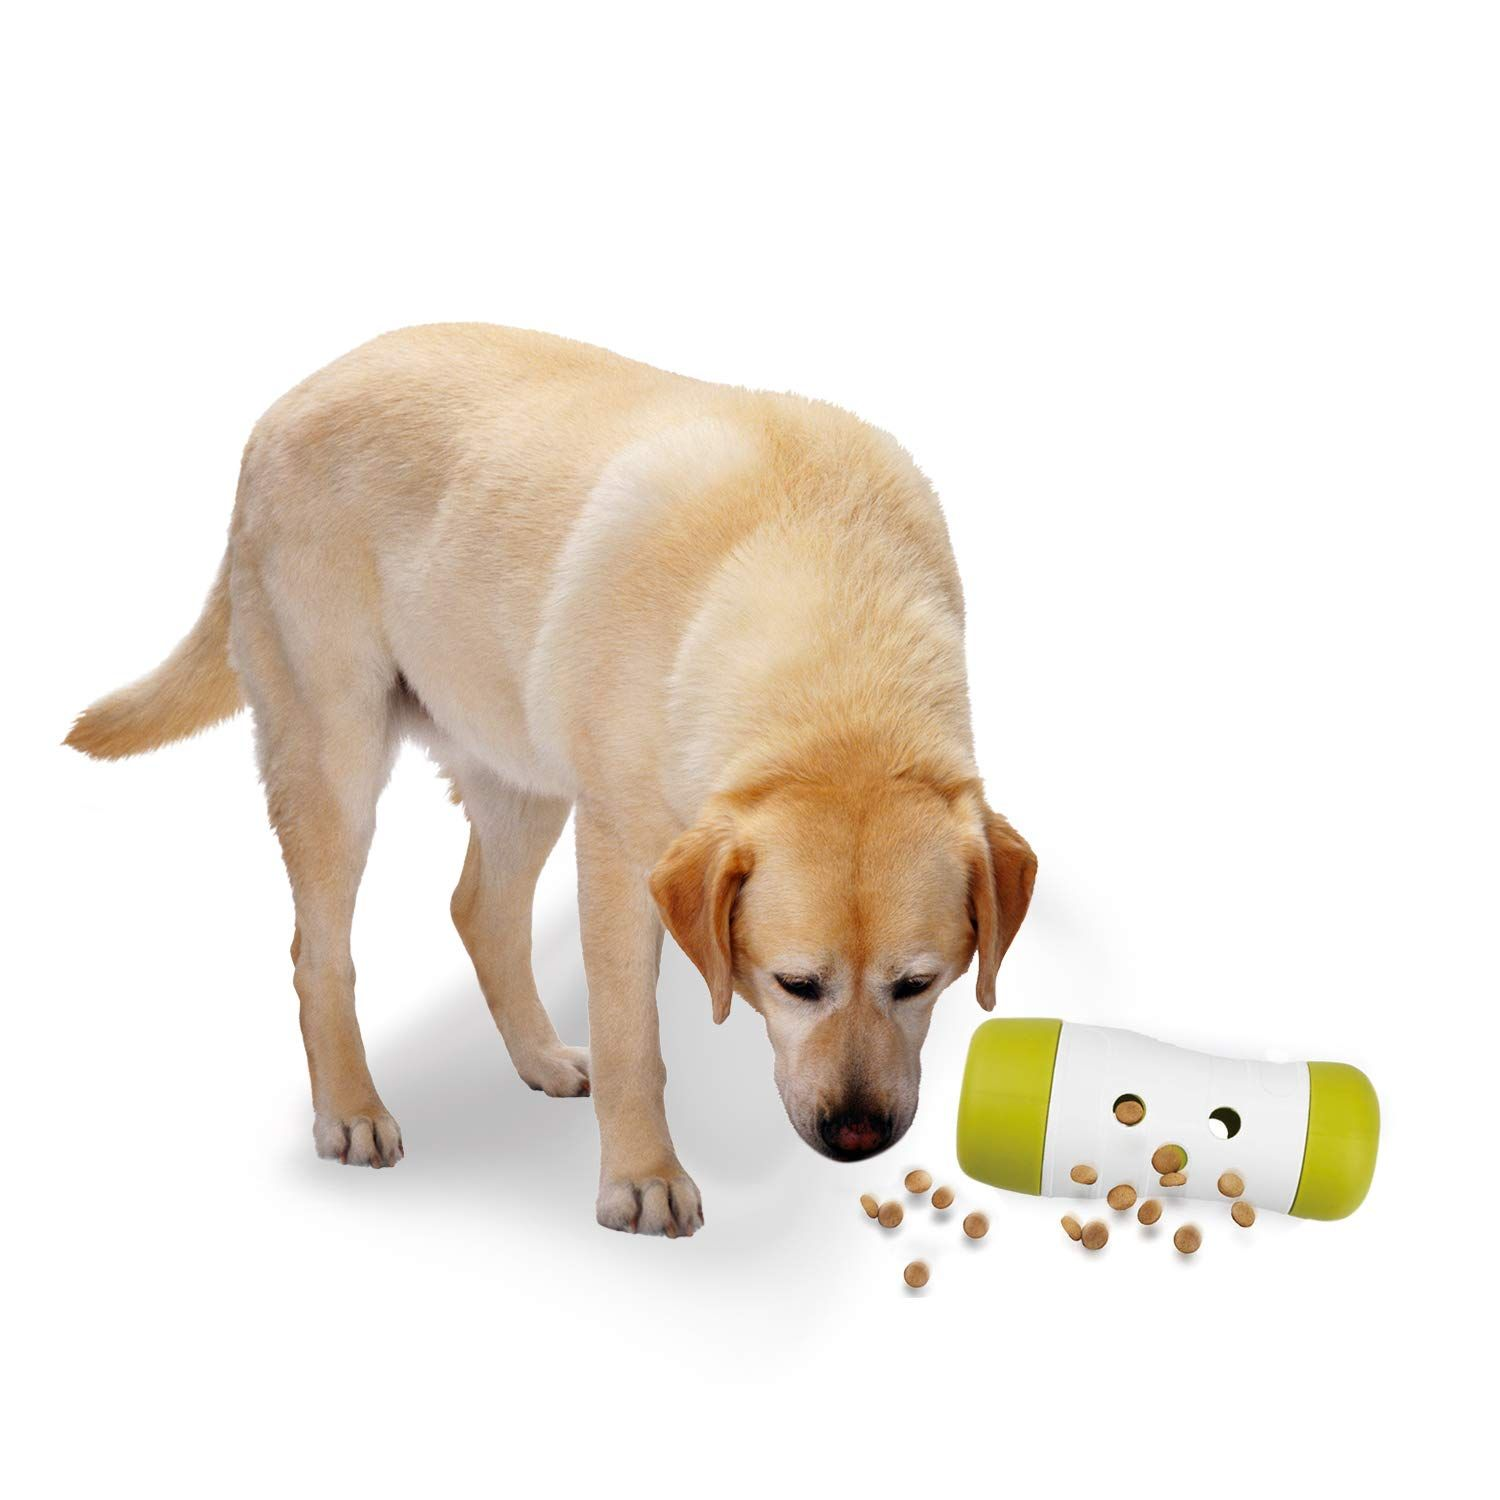 Pet Supplies All For Paws Dog Treat Ball Roll Toy Heavy Duty